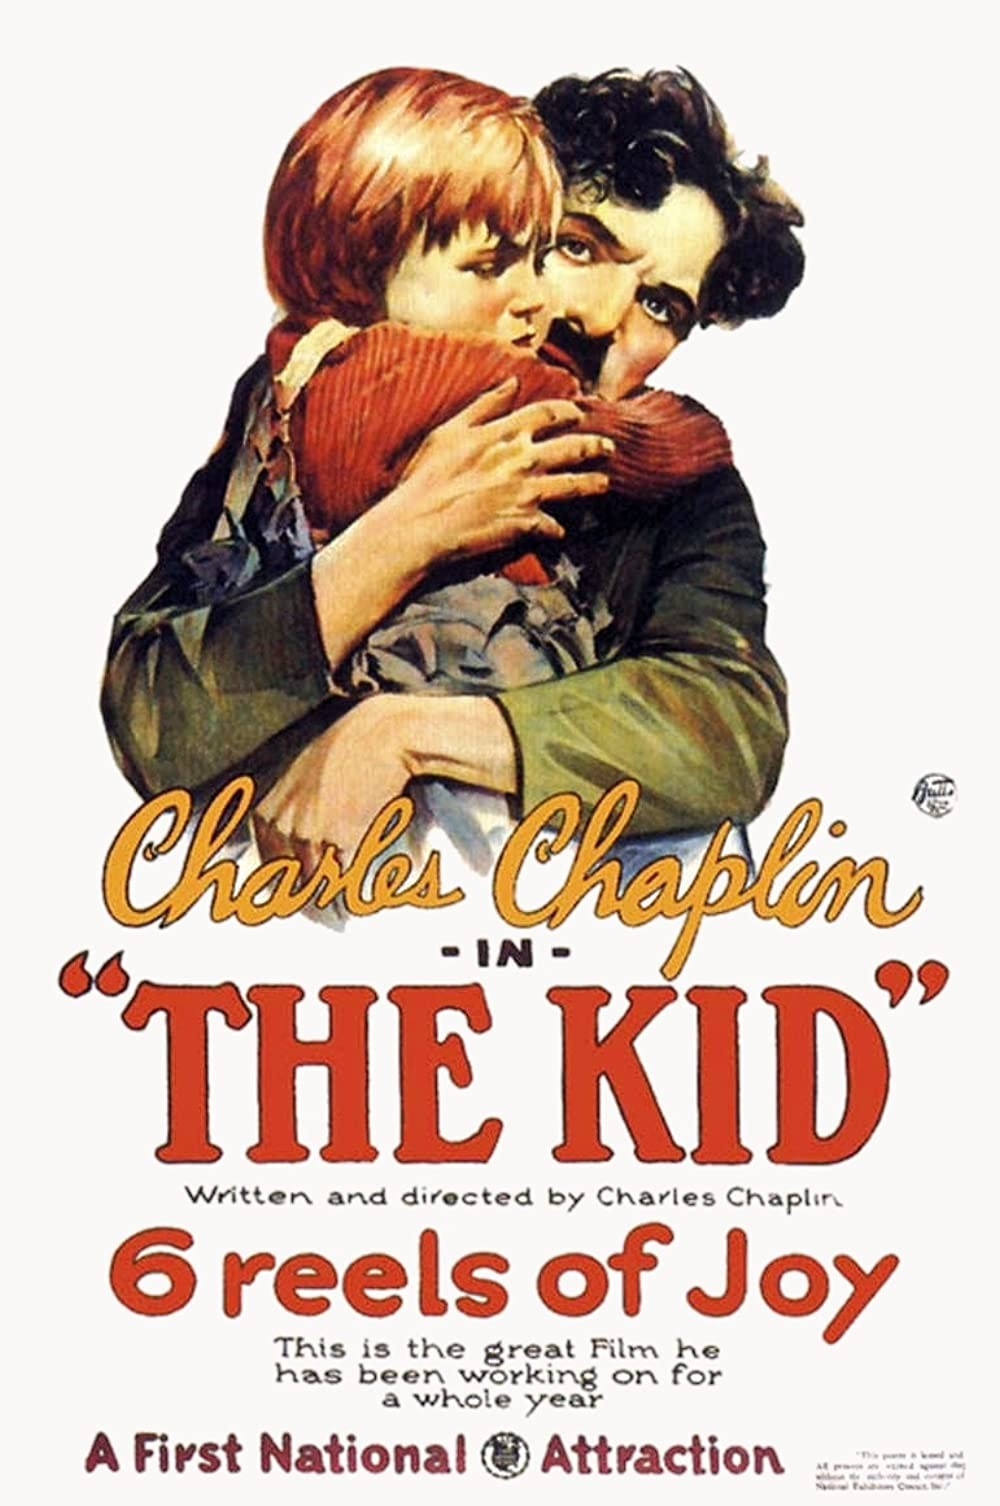 THE KID [1921]